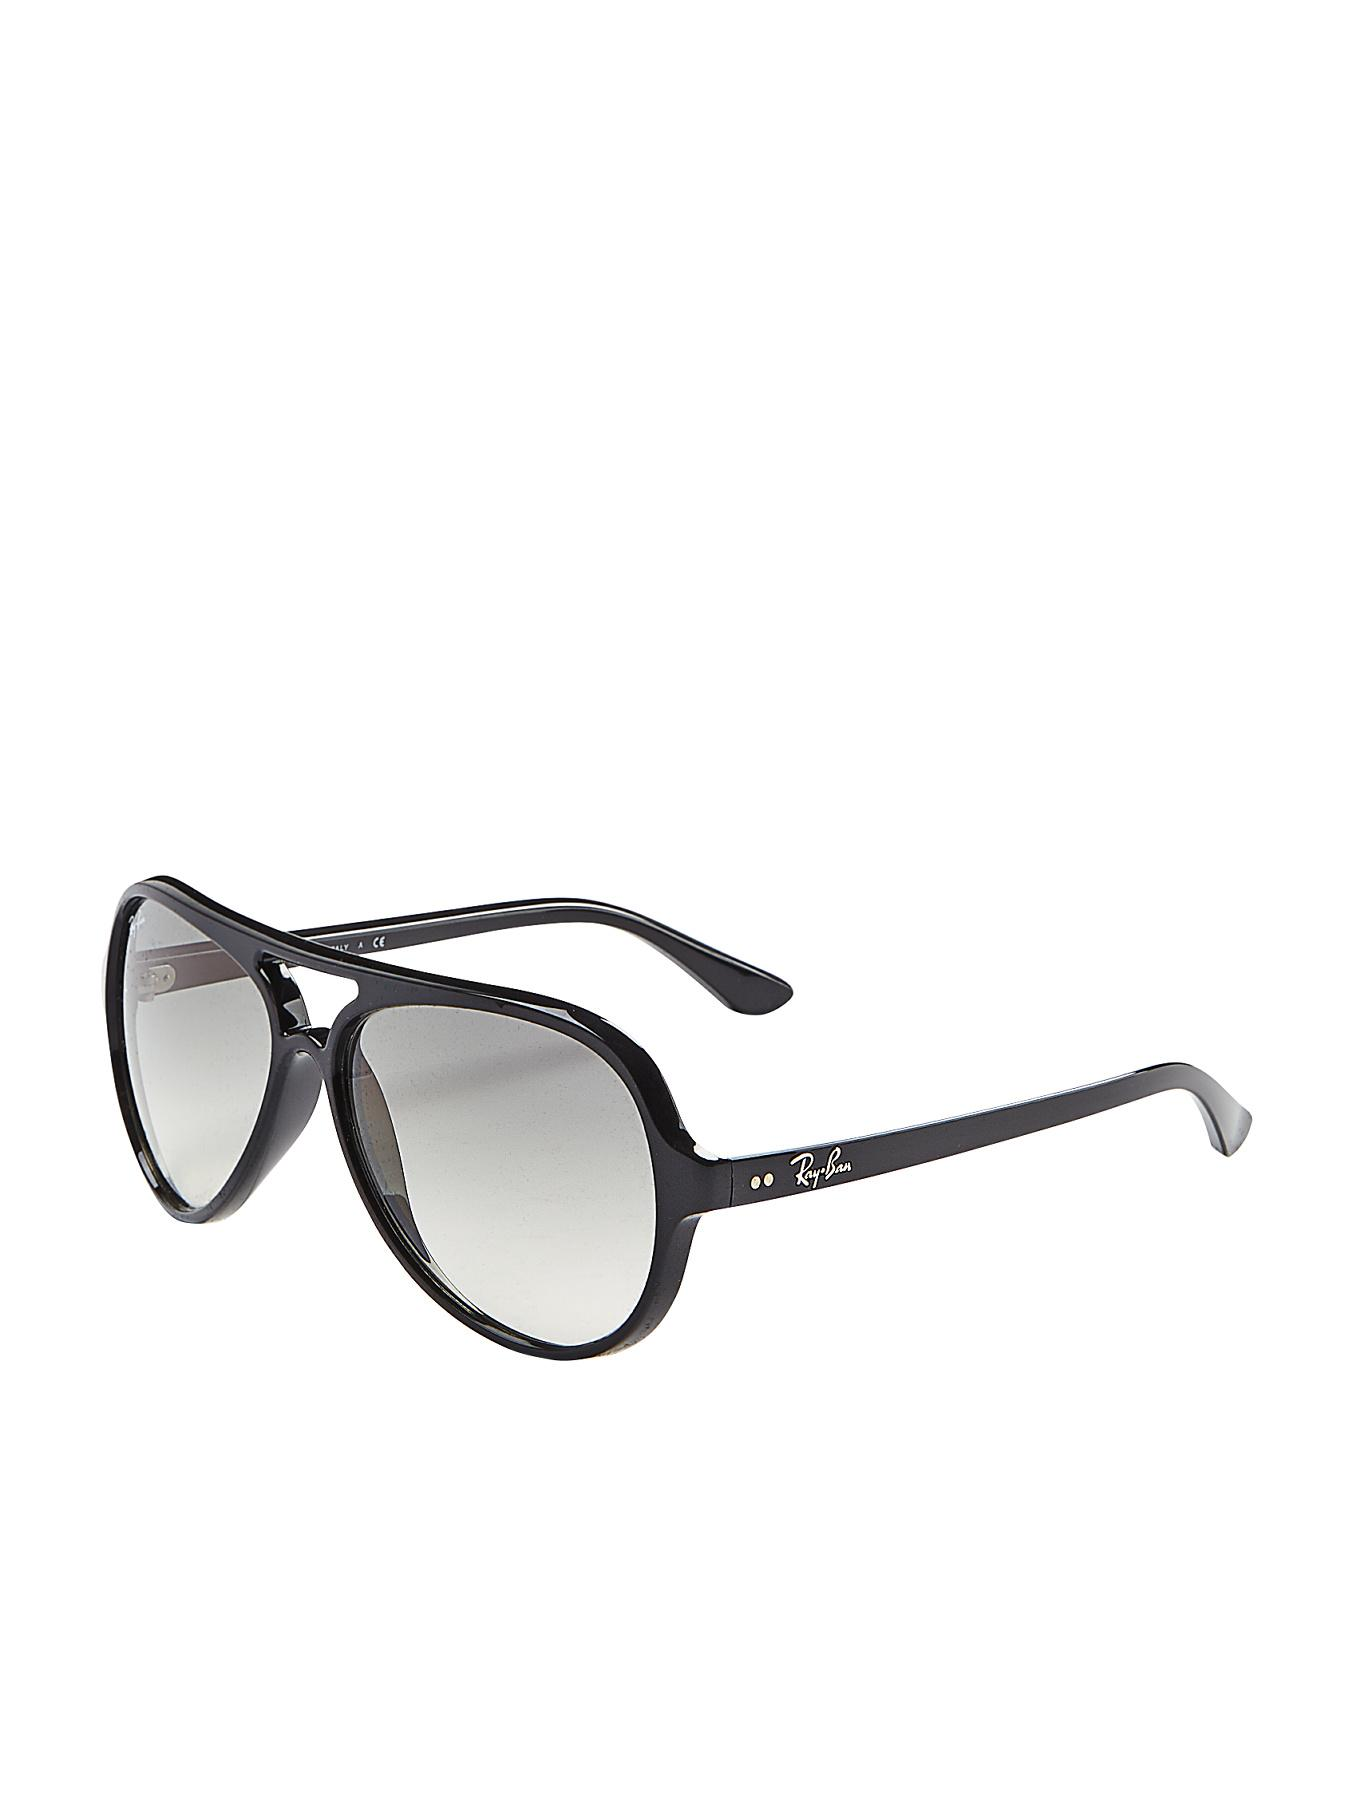 Ray-Ban Cats 5000 Aviator Sunglasses - Black - Black, Black